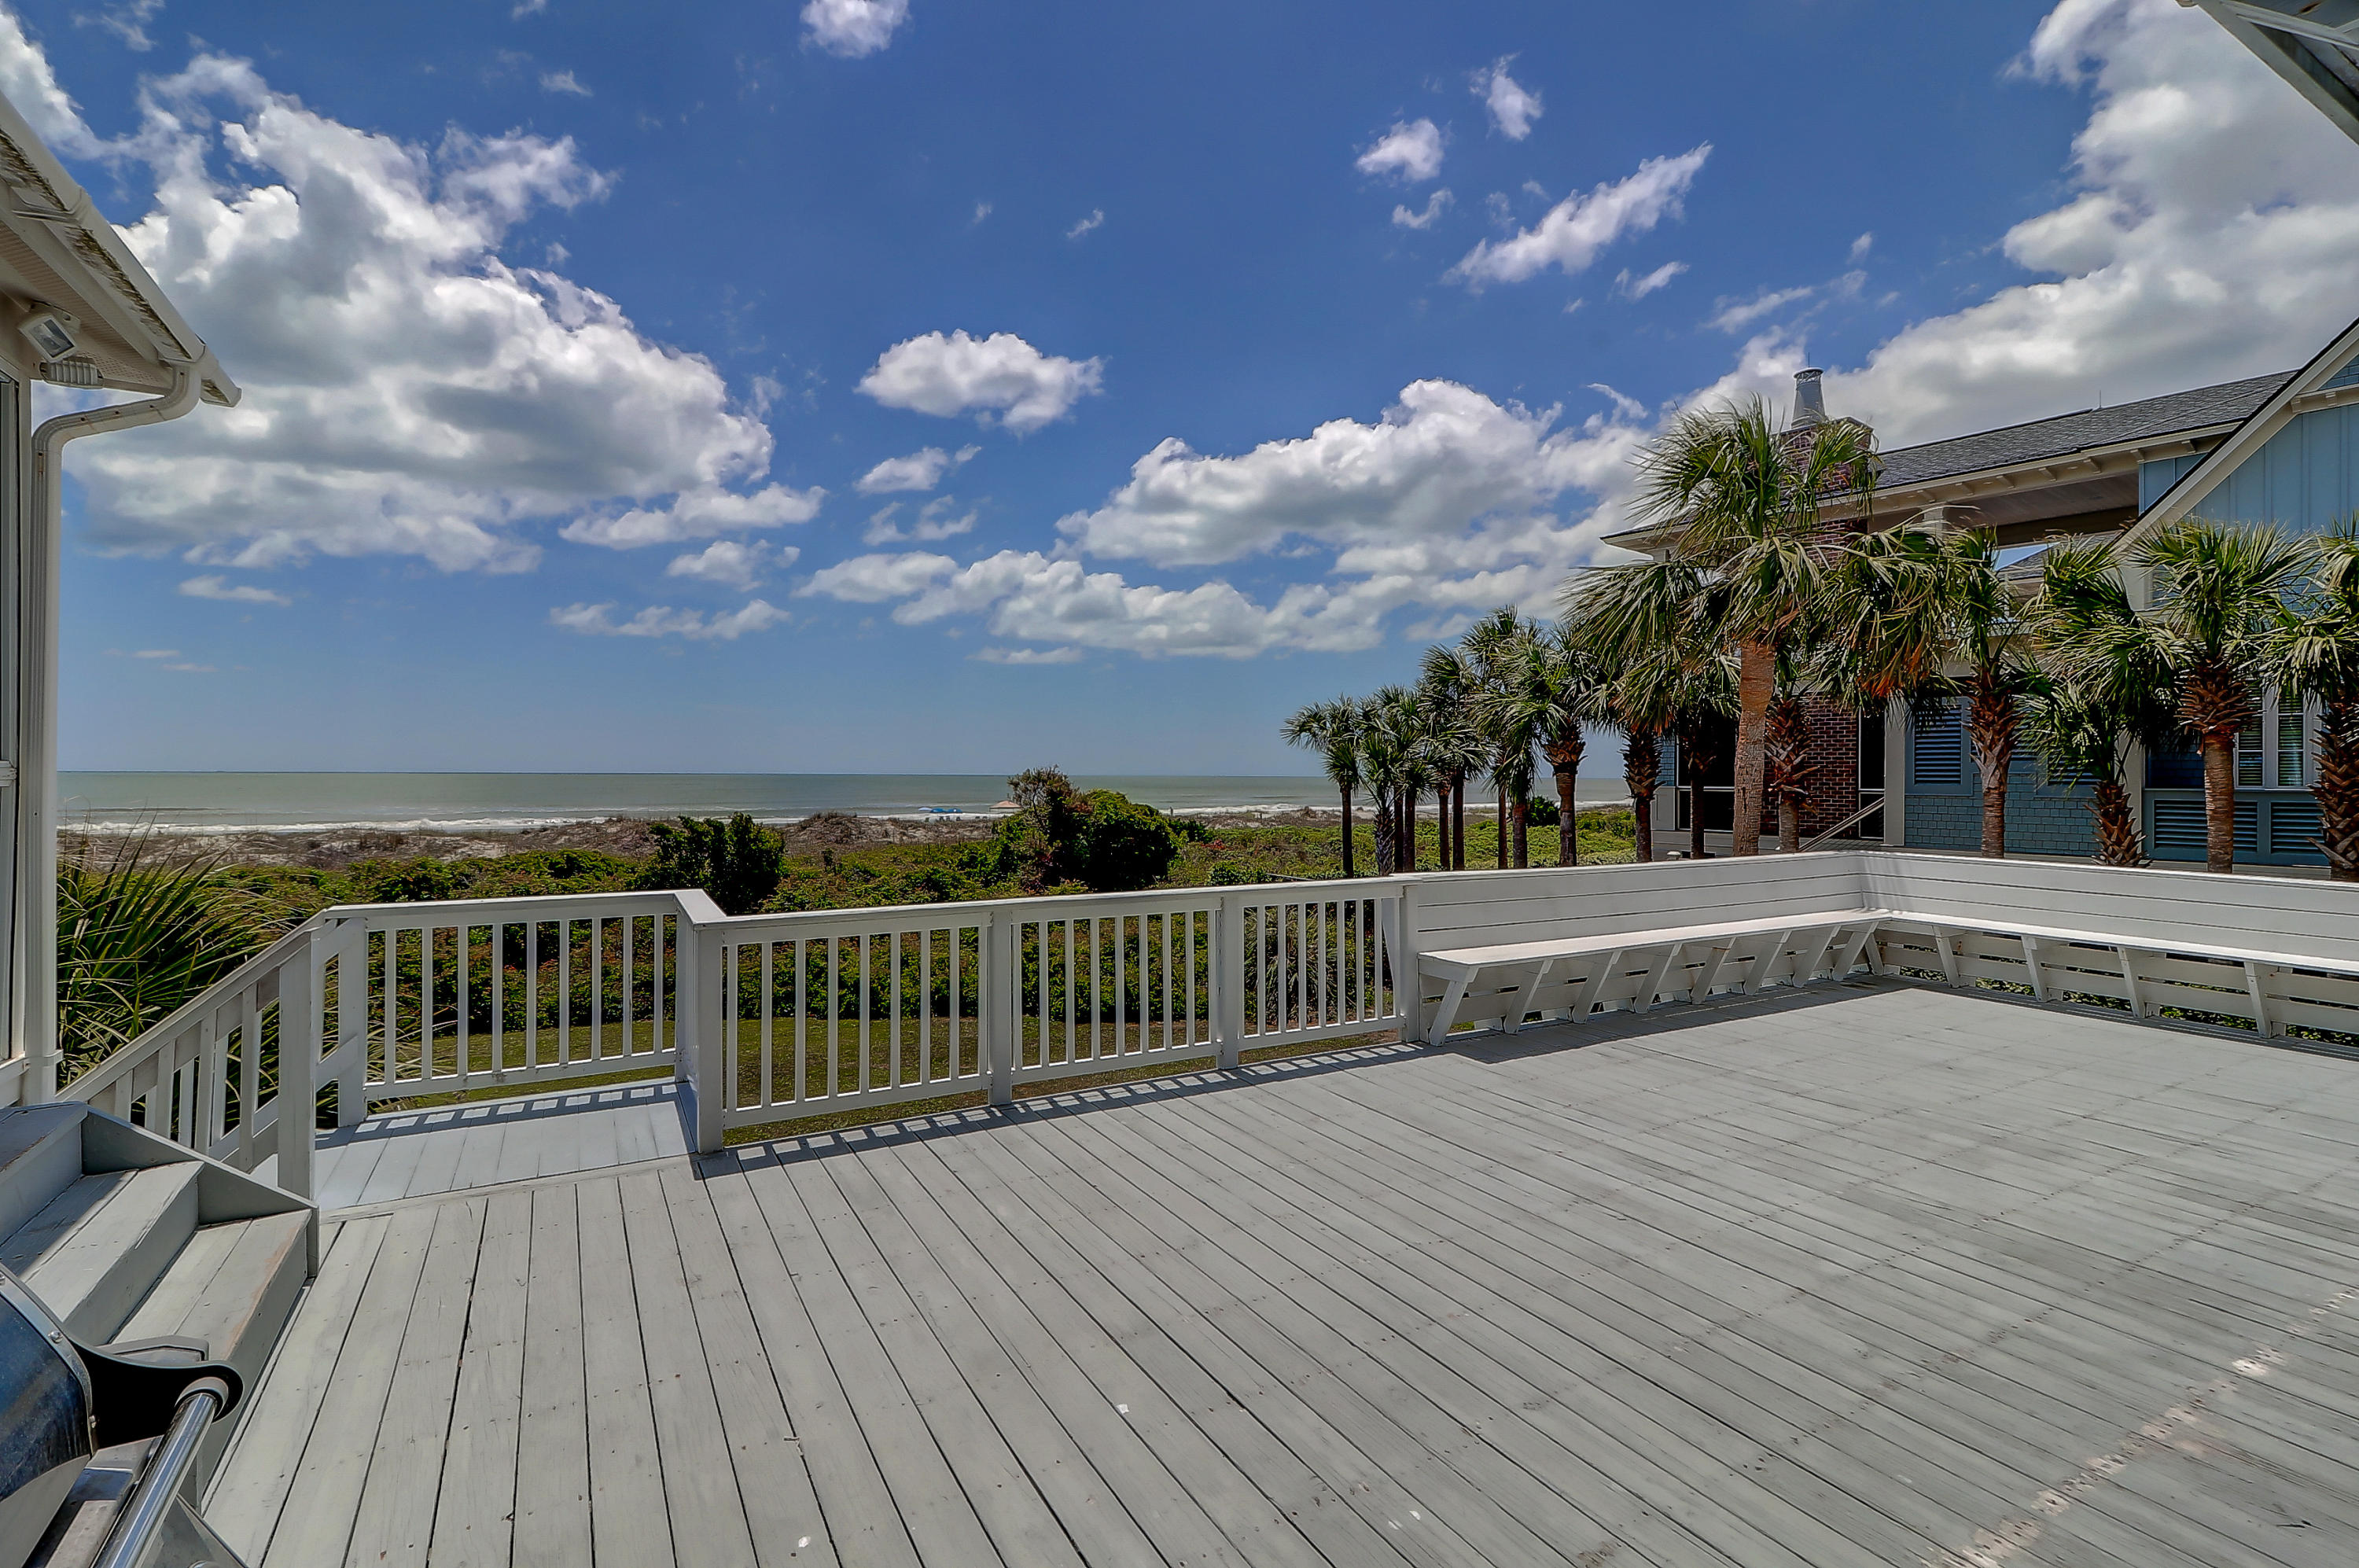 Isle of Palms Homes For Sale - 1 47th (1/13th), Isle of Palms, SC - 62